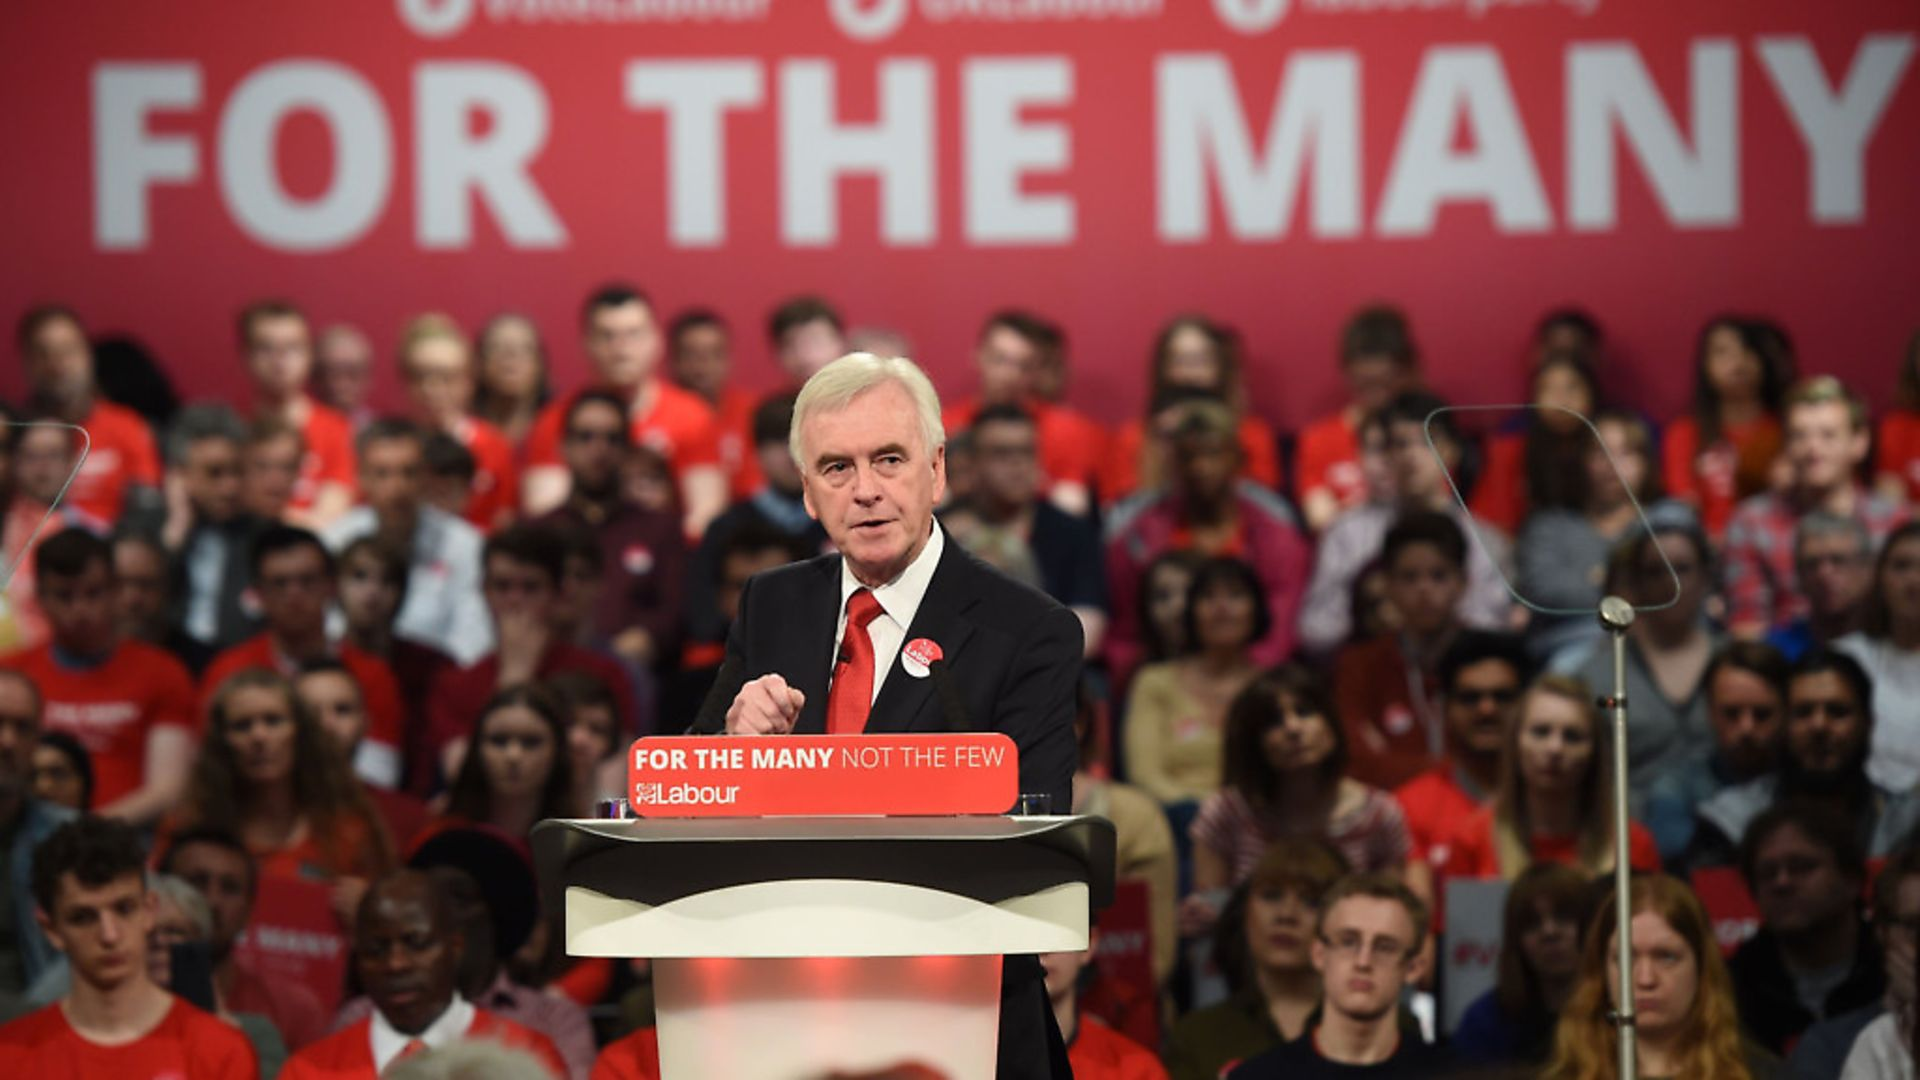 Shadow chancellor John McDonnell addresses supporters during a General Election campaign event (Photograph: Joe Giddens/PA) - Credit: PA Wire/PA Images